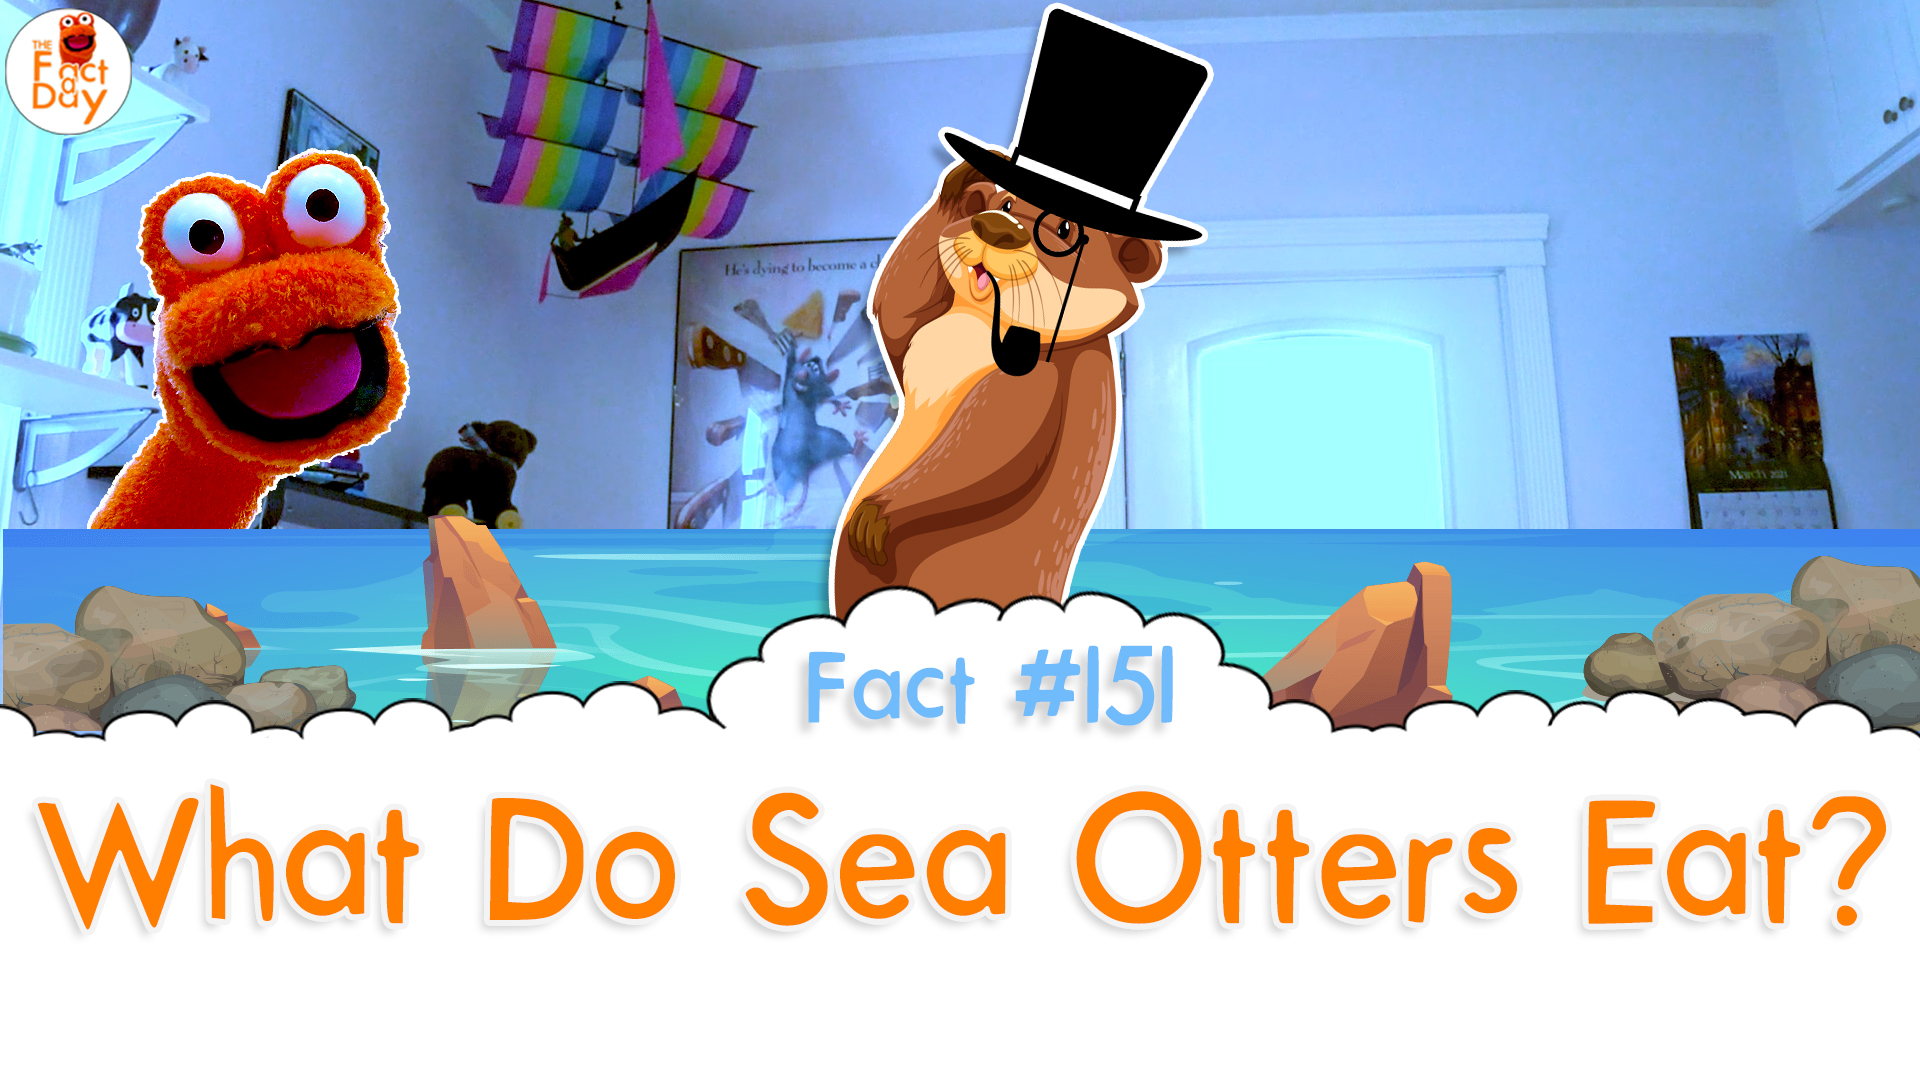 The Fact a Day - What do sea otters eat